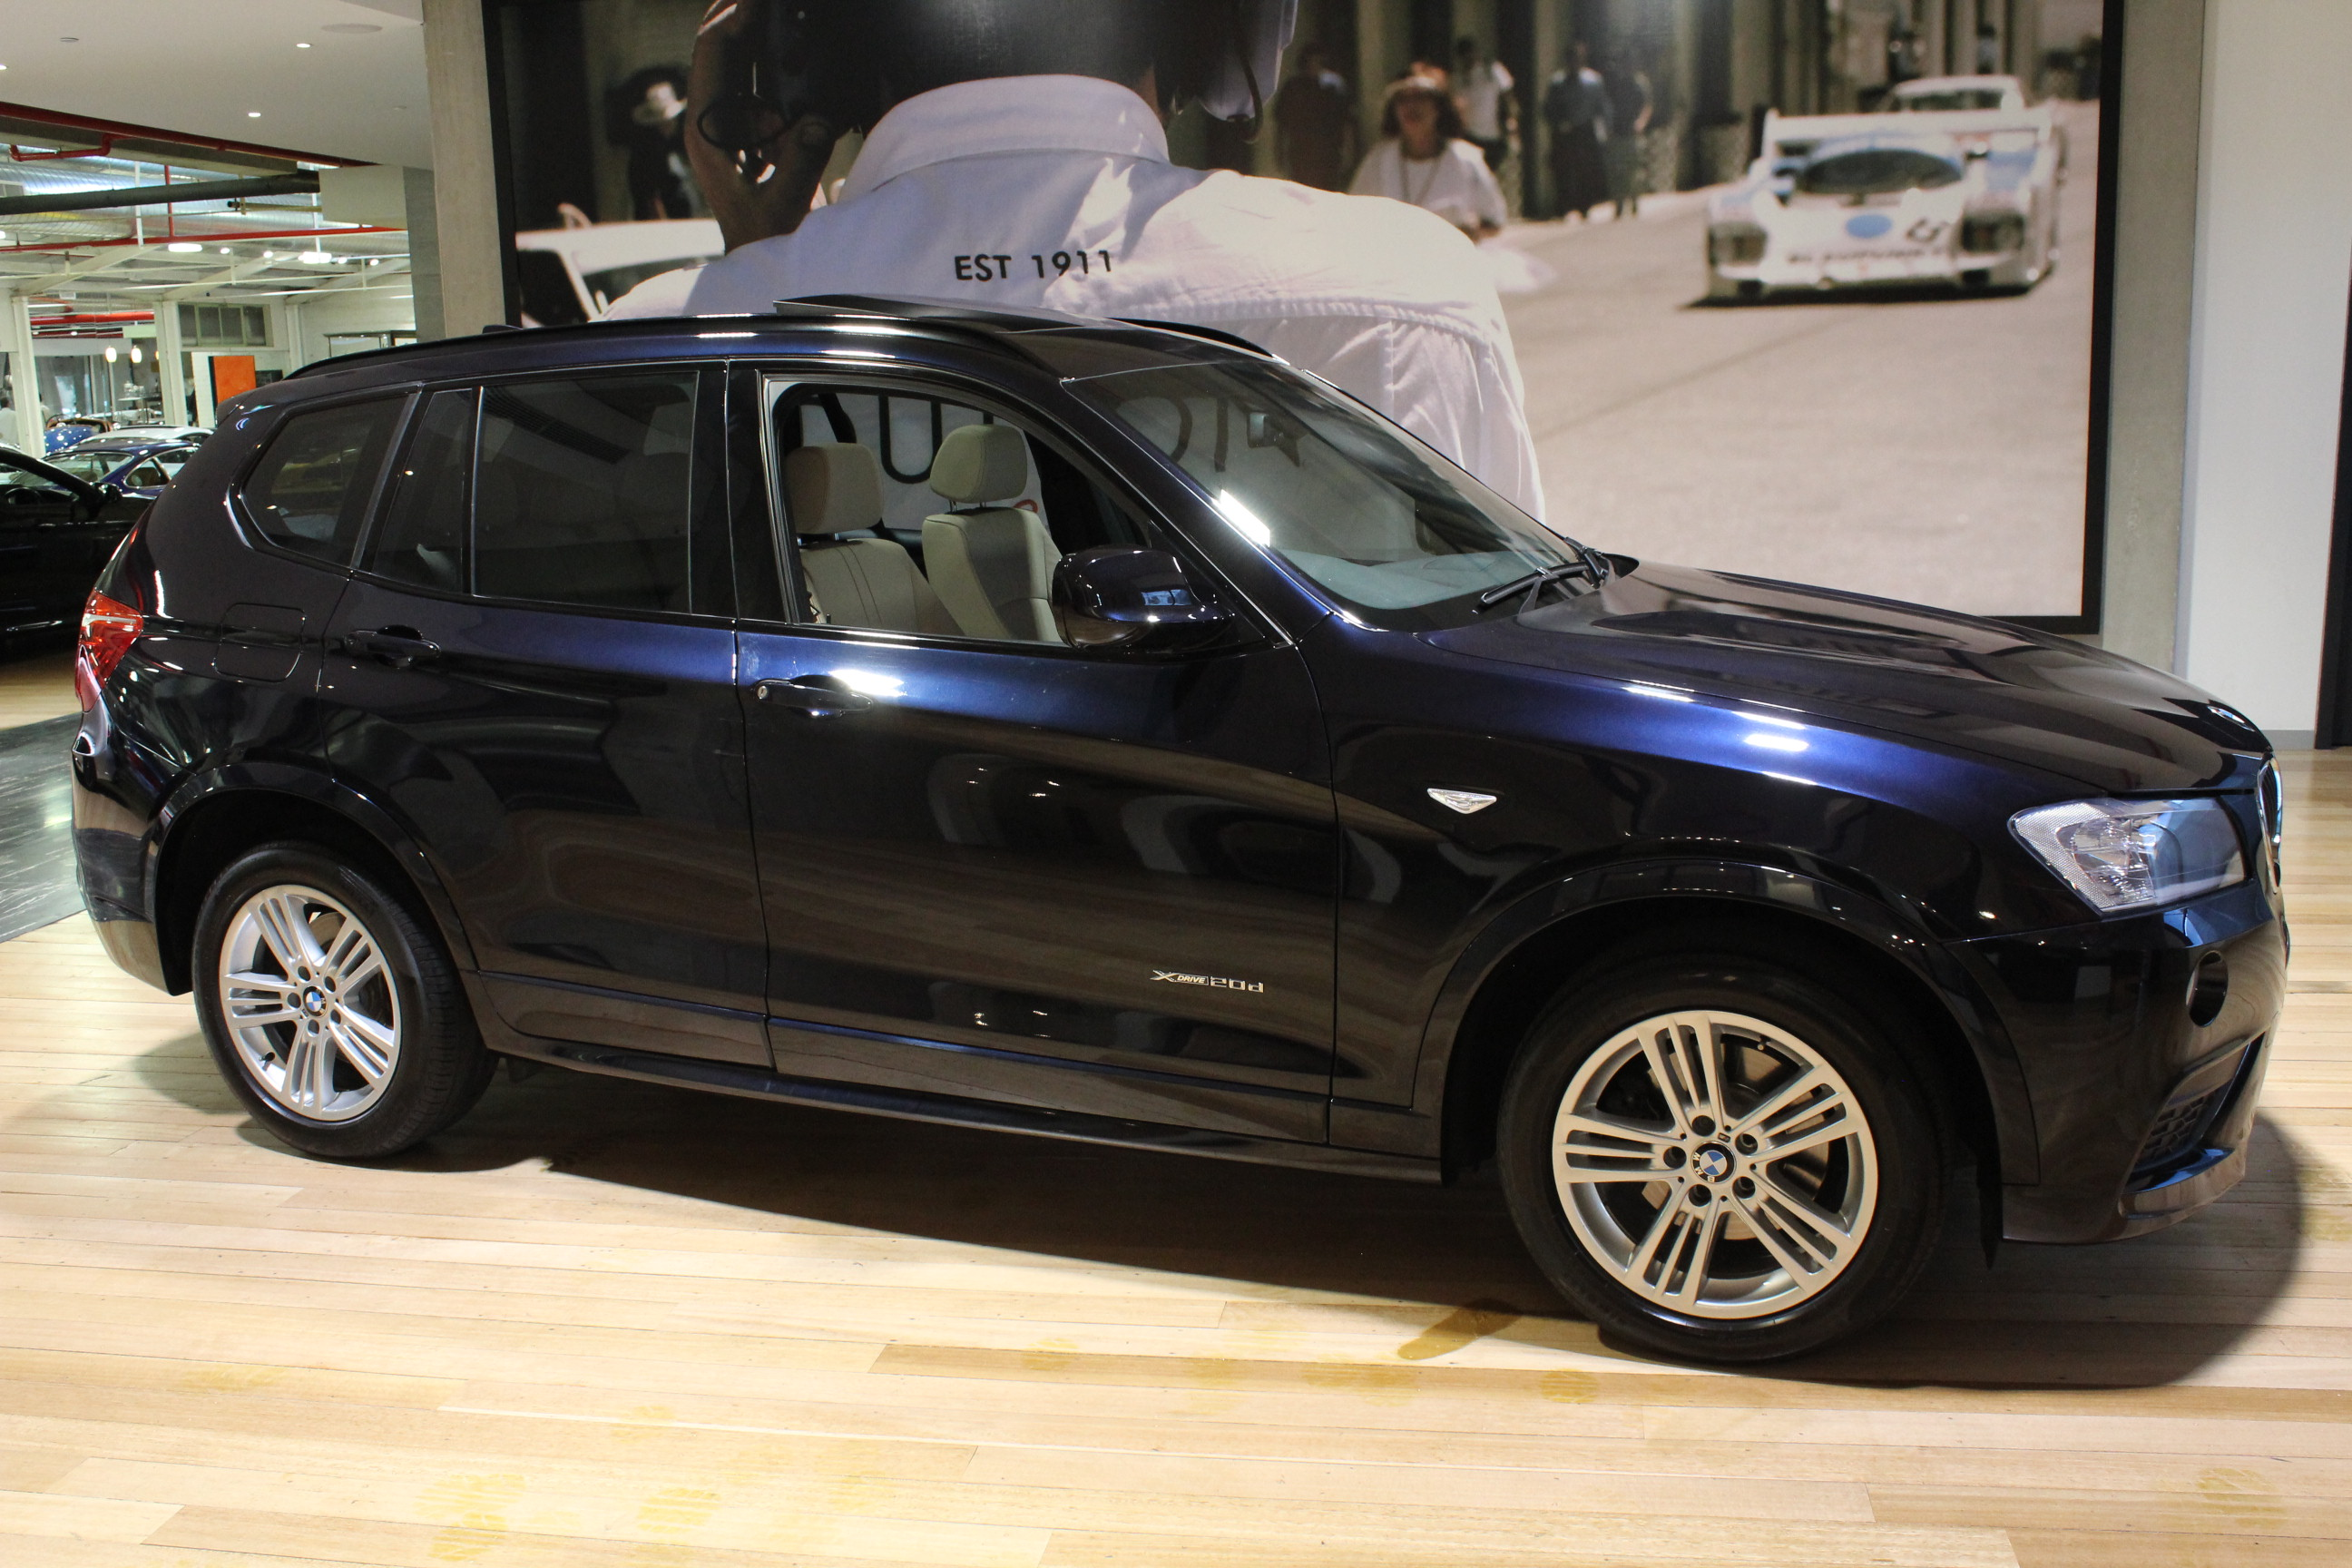 2012 BMW X3 F25 xDrive20d Wagon 5dr Steptronic 8sp 4x4 2.0DT [MY12.5] - for sale in Australia